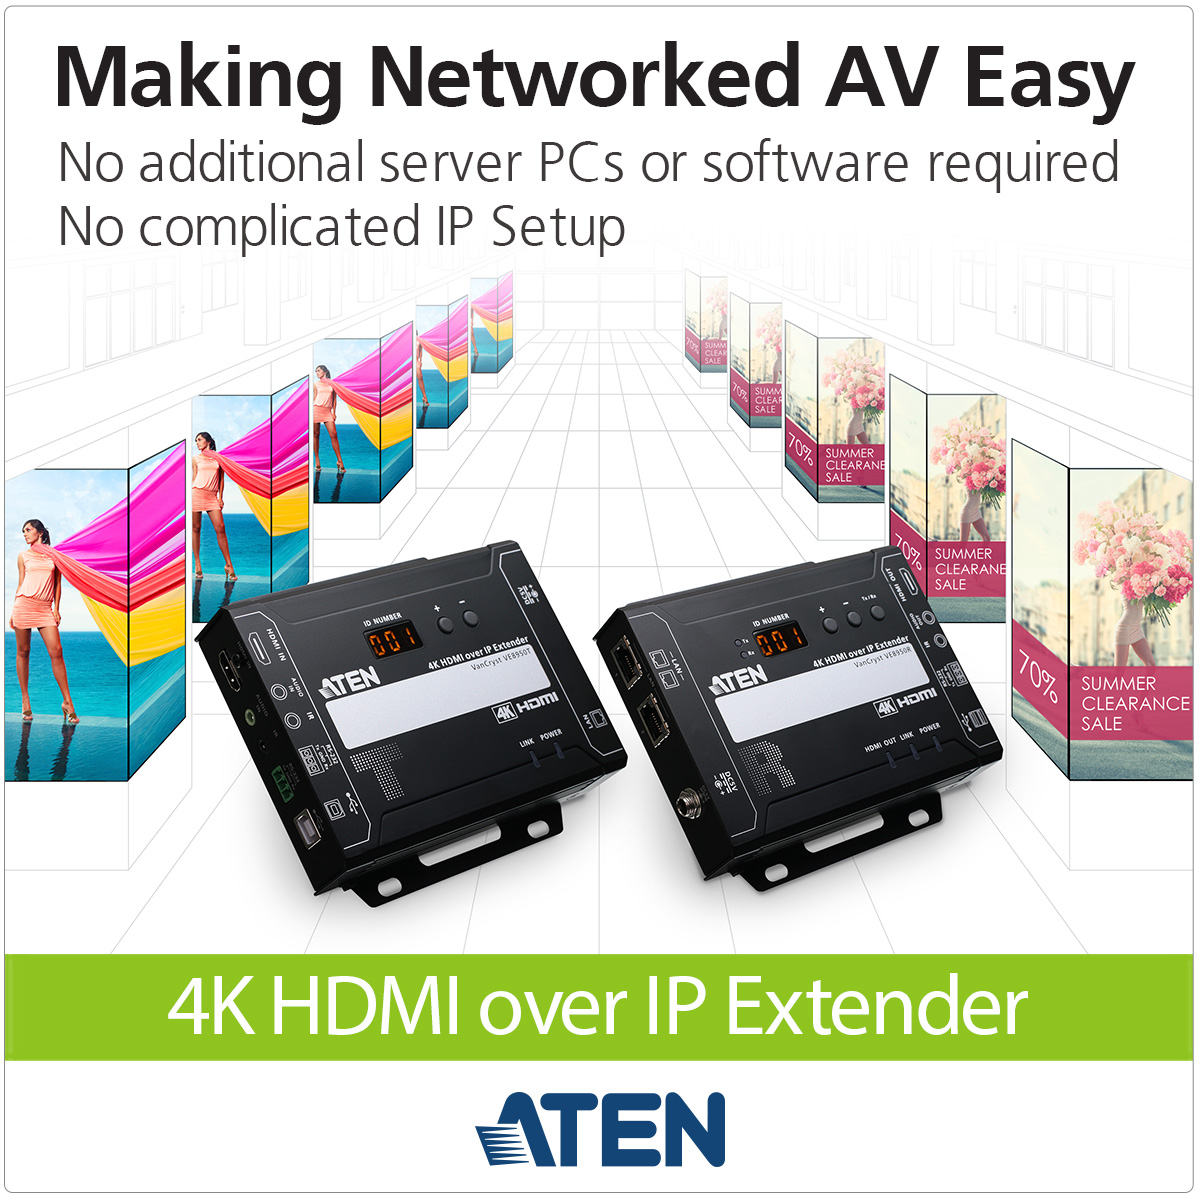 VE8950 4K Video over IP Extender Makes Networked A/V Easy